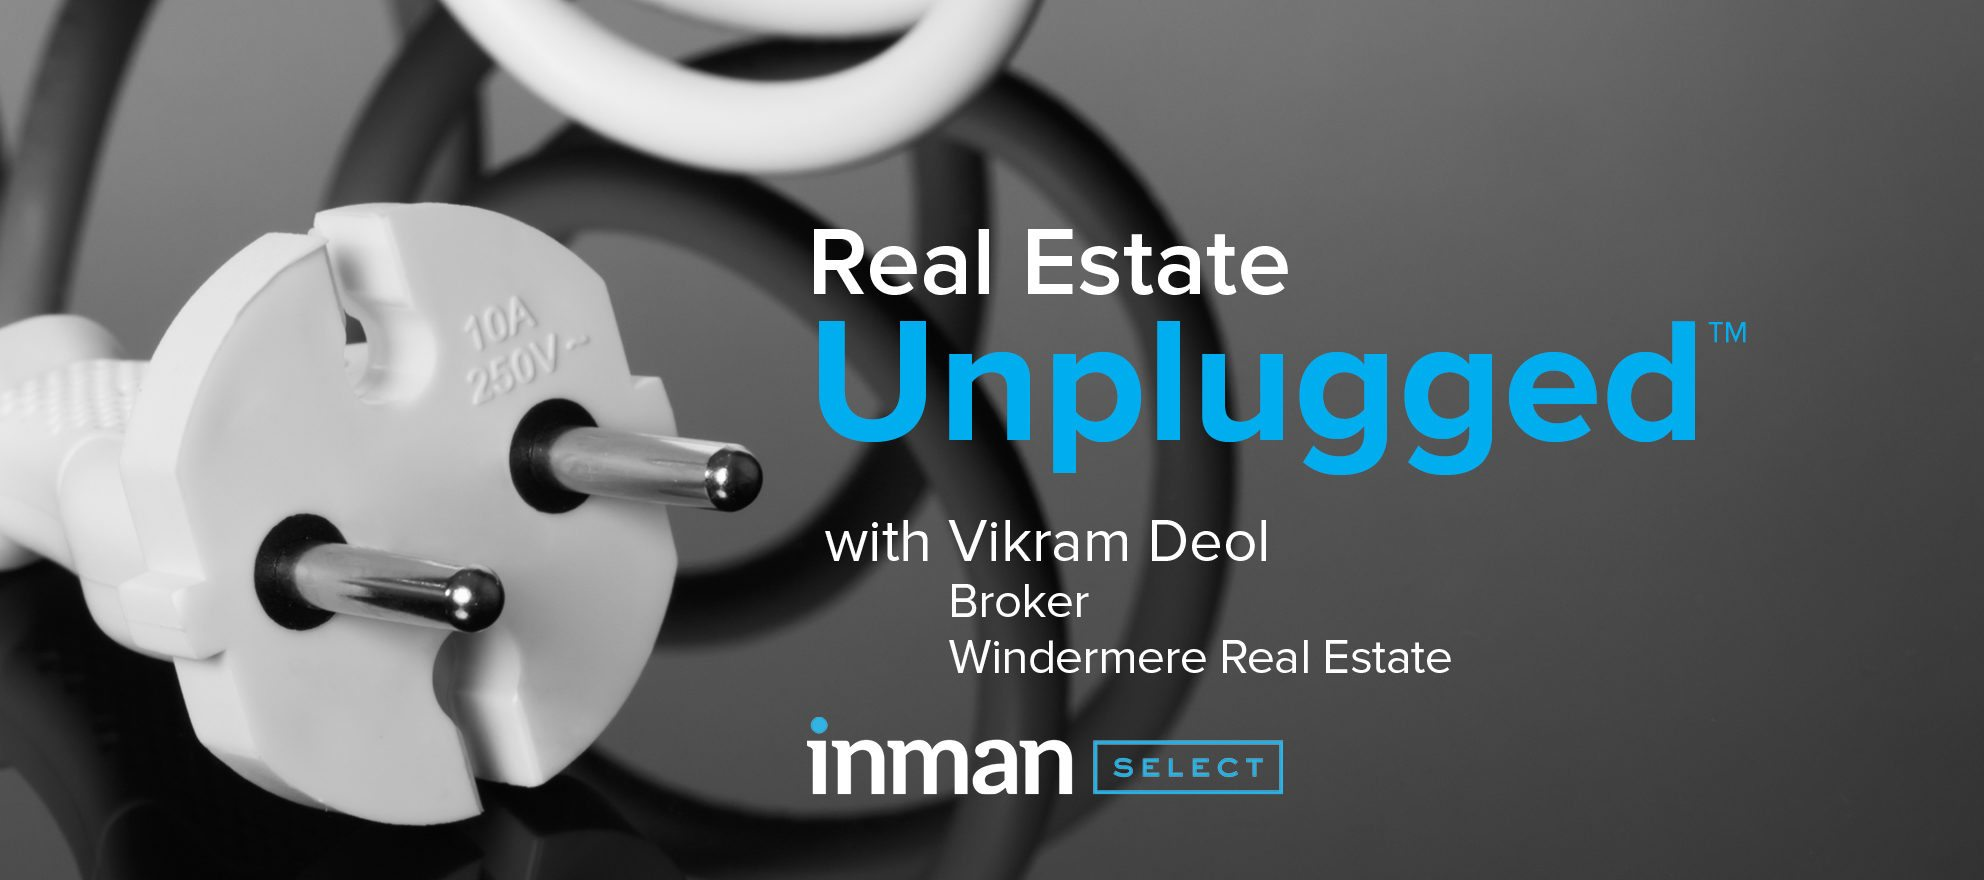 Vikram Deol on how to bring younger agents into real estate and attracting the best talent